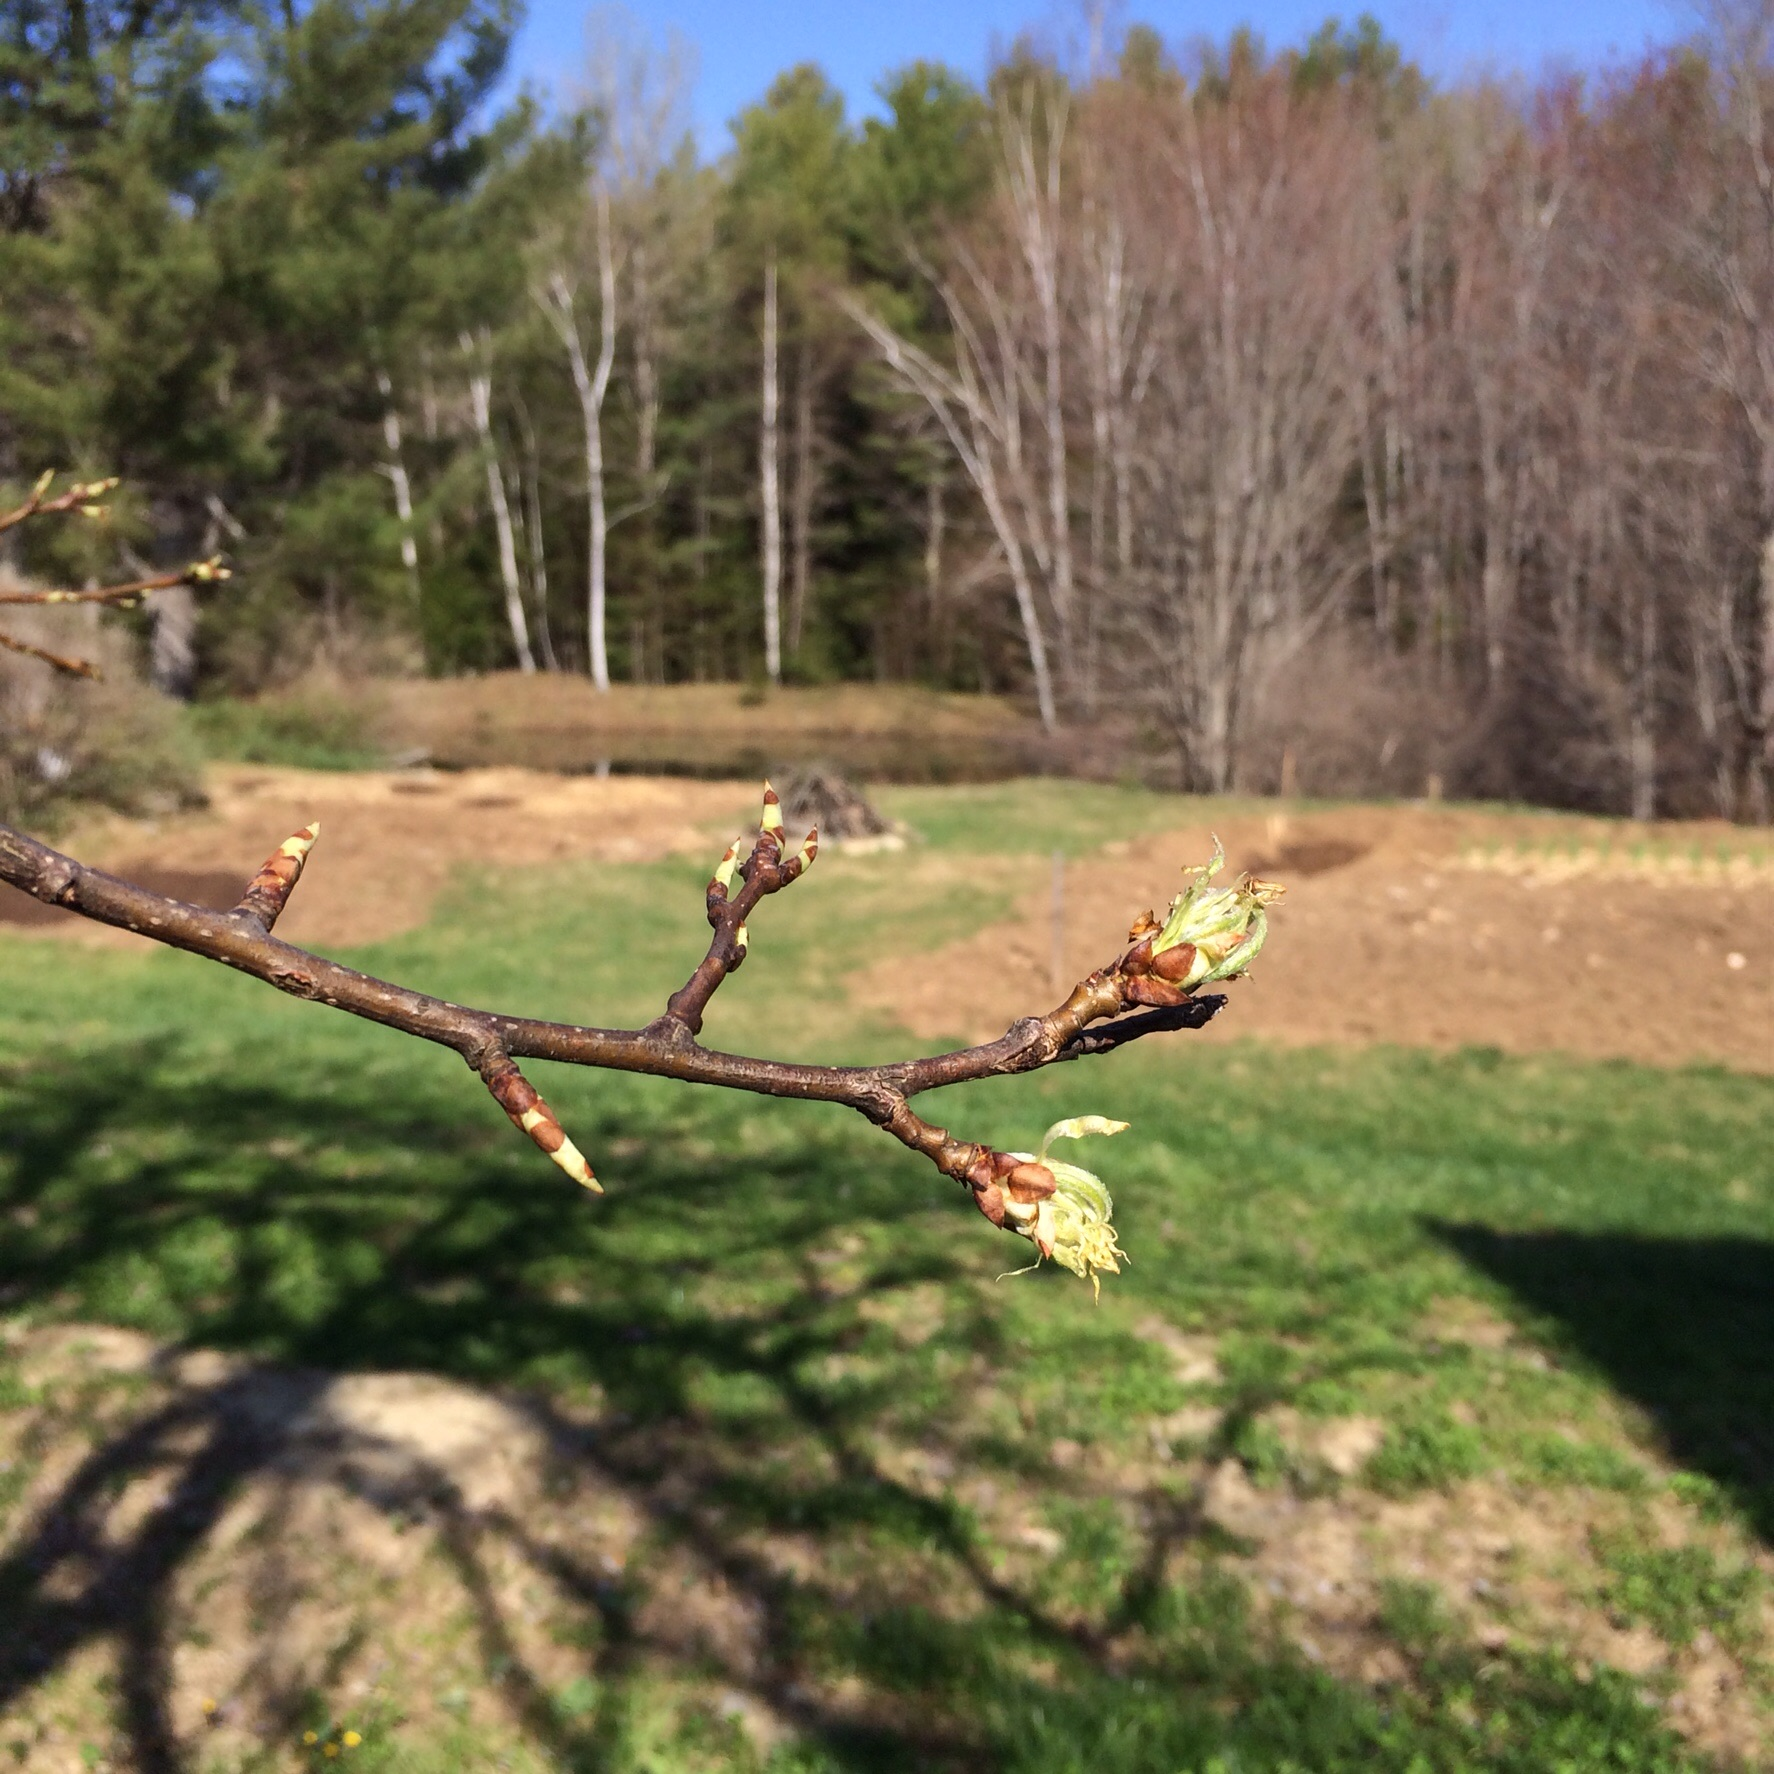 The pear tree is budding.